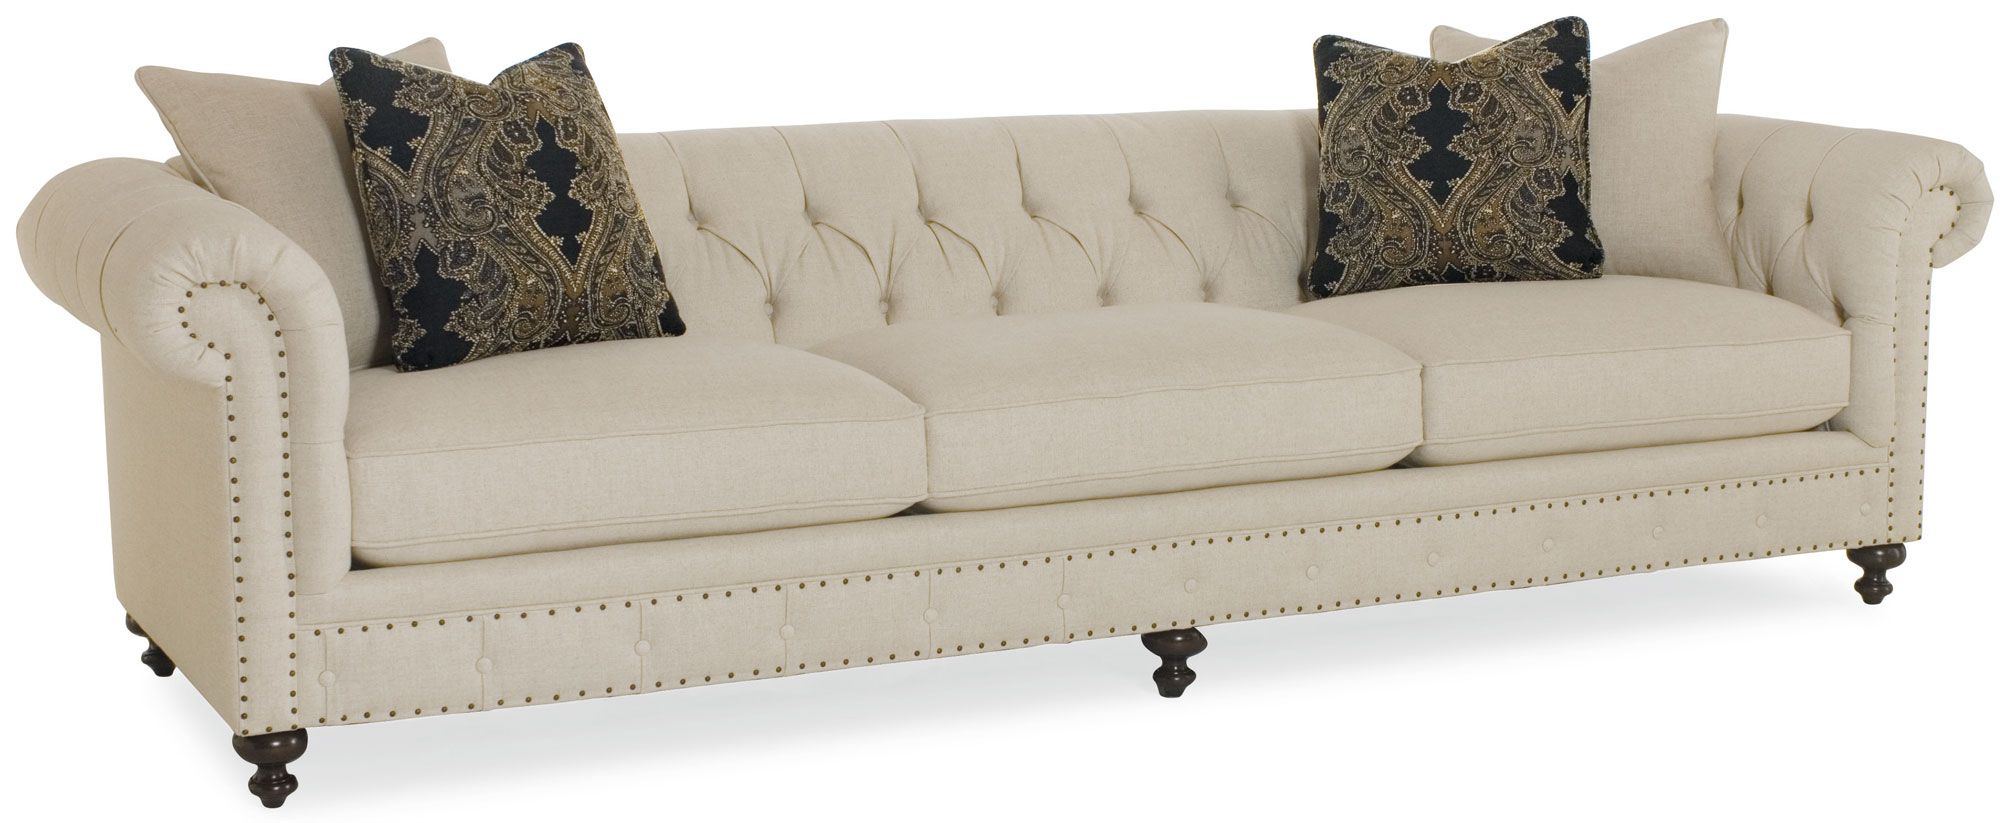 For Bernhardt Riviera Sofa And Other Living Room Sofas At Stacy Furniture In Gvine Allen Plano Tx Available Nailhead Finishes